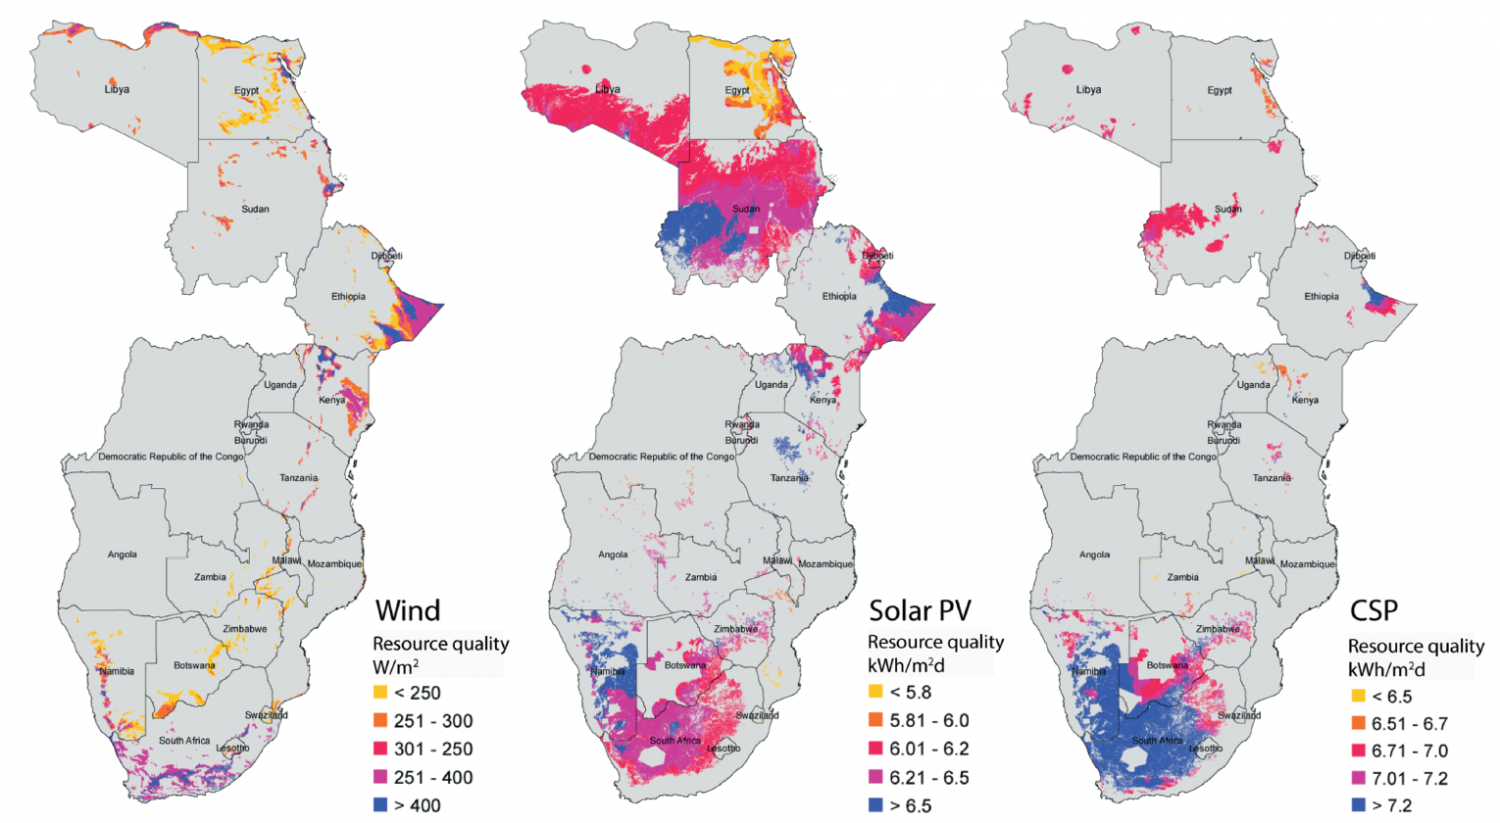 the location and energy potential in terawatt hours of eastern and southern african renewable resources wind solar photovoltaic and concentrating solar